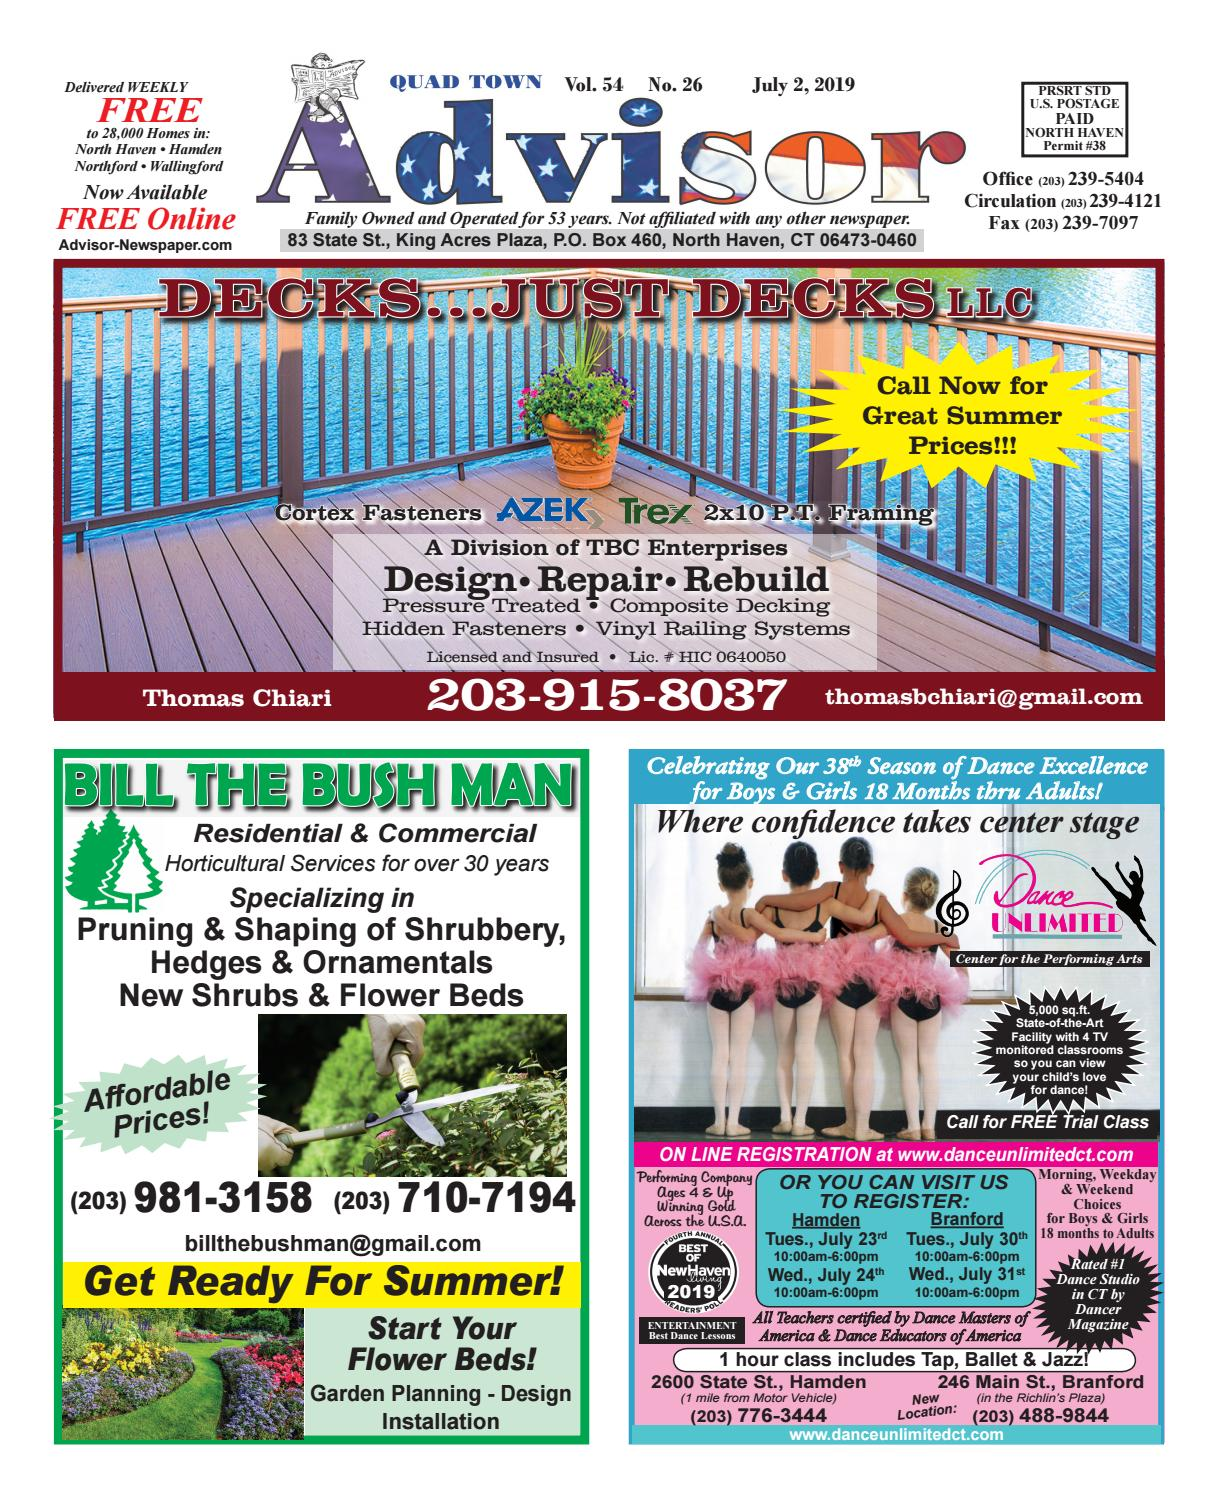 Los Lunas Christmas Arts And Crafts Fair Llhs Dec 8 2020 The Advisor July 2, 2019 by The Advisor Newspaper   issuu